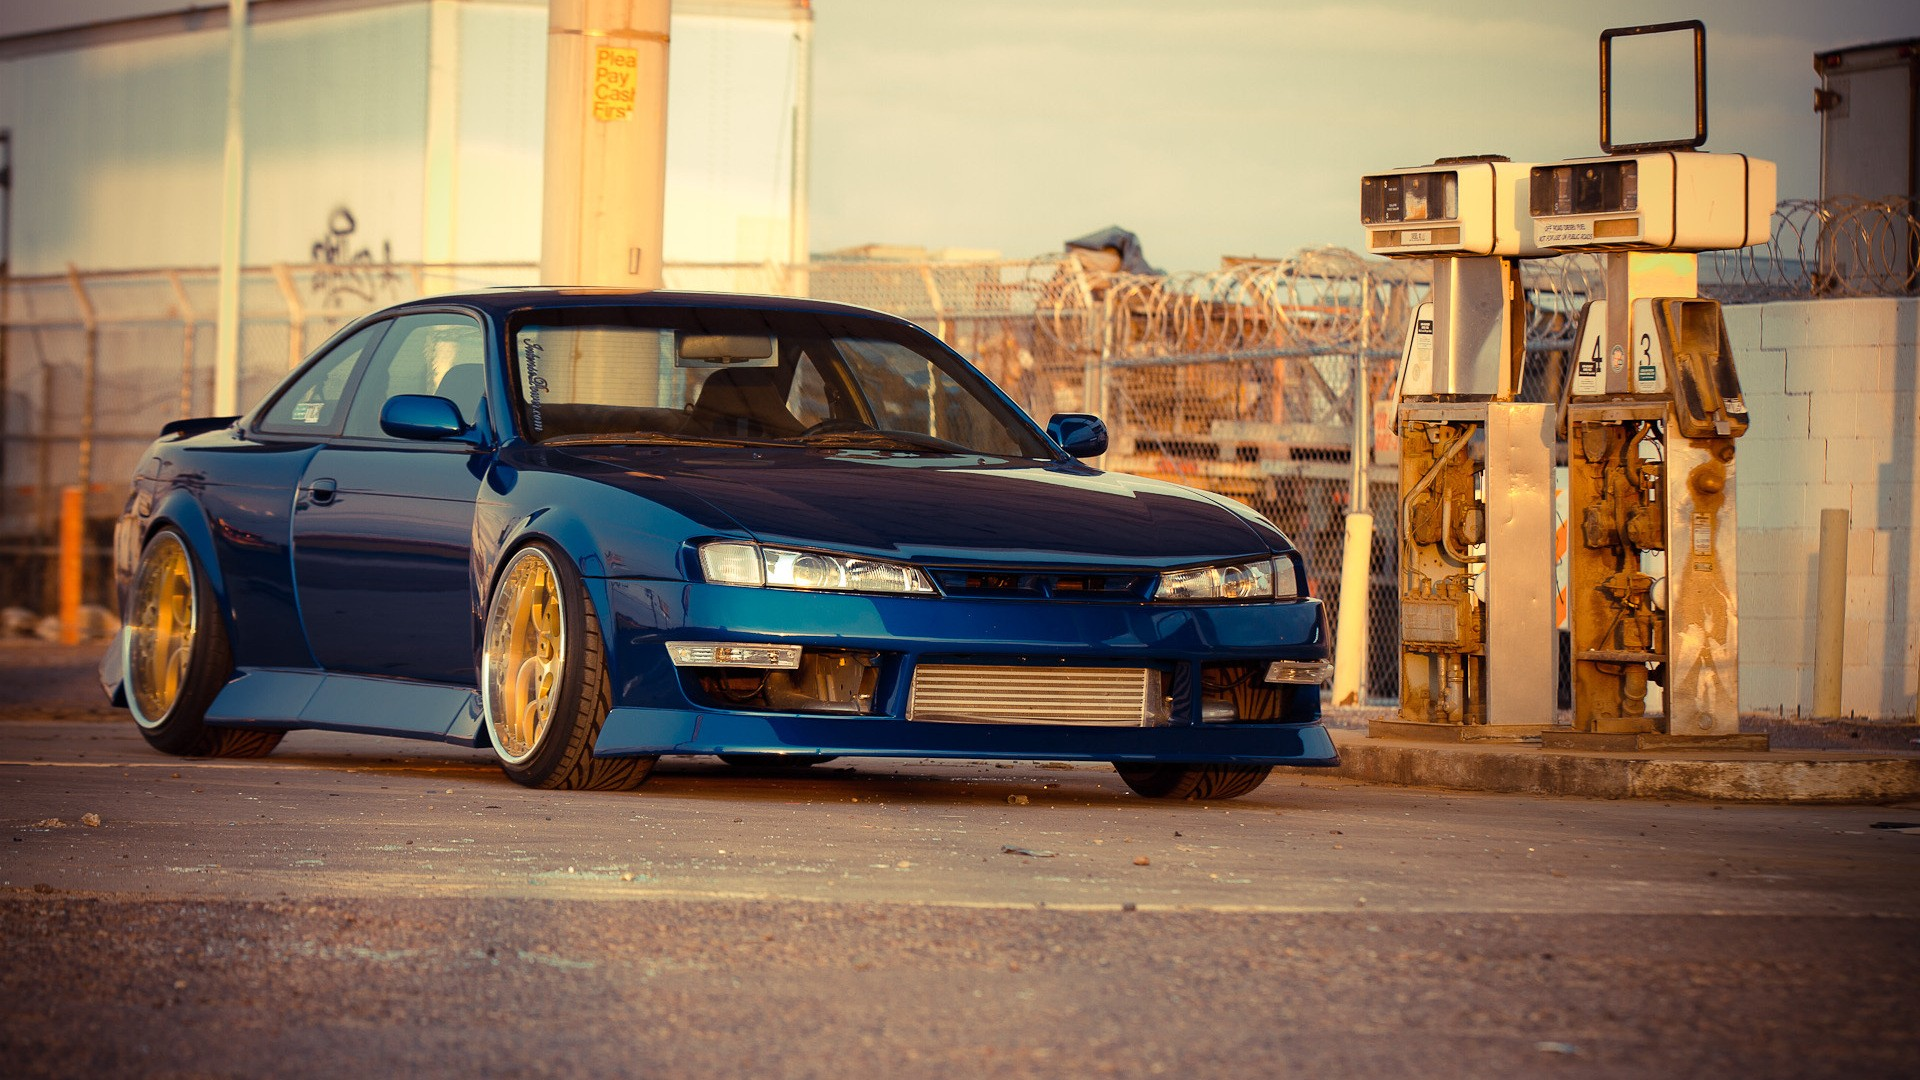 1920x1080 - Nissan Silvia S14 Wallpapers 28